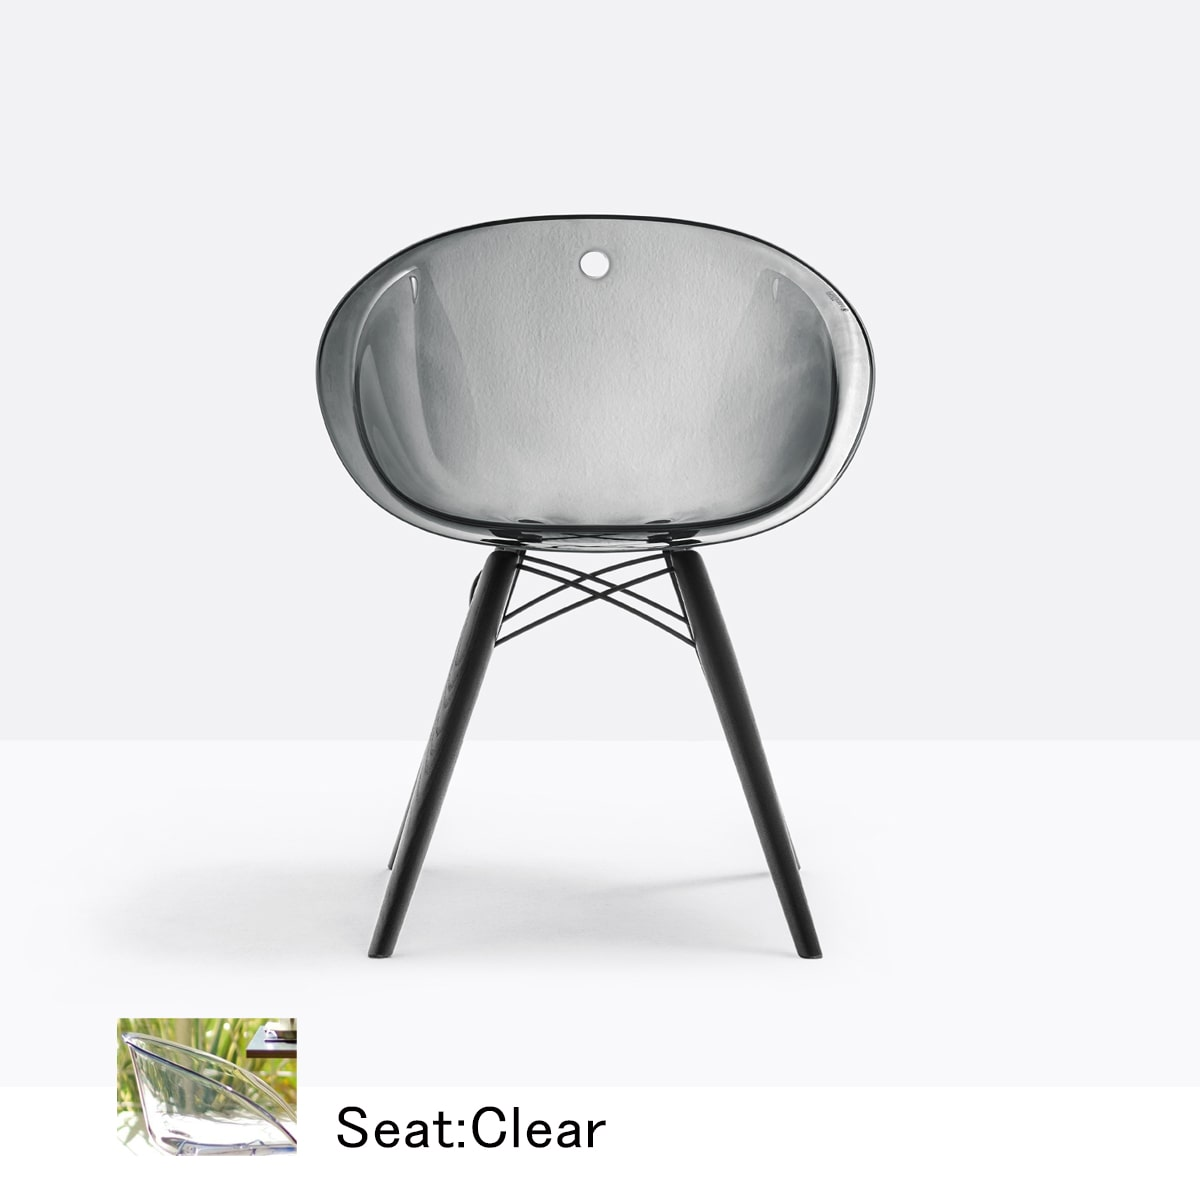 Seat:Clear TR × Legs:Black lacquered Oak